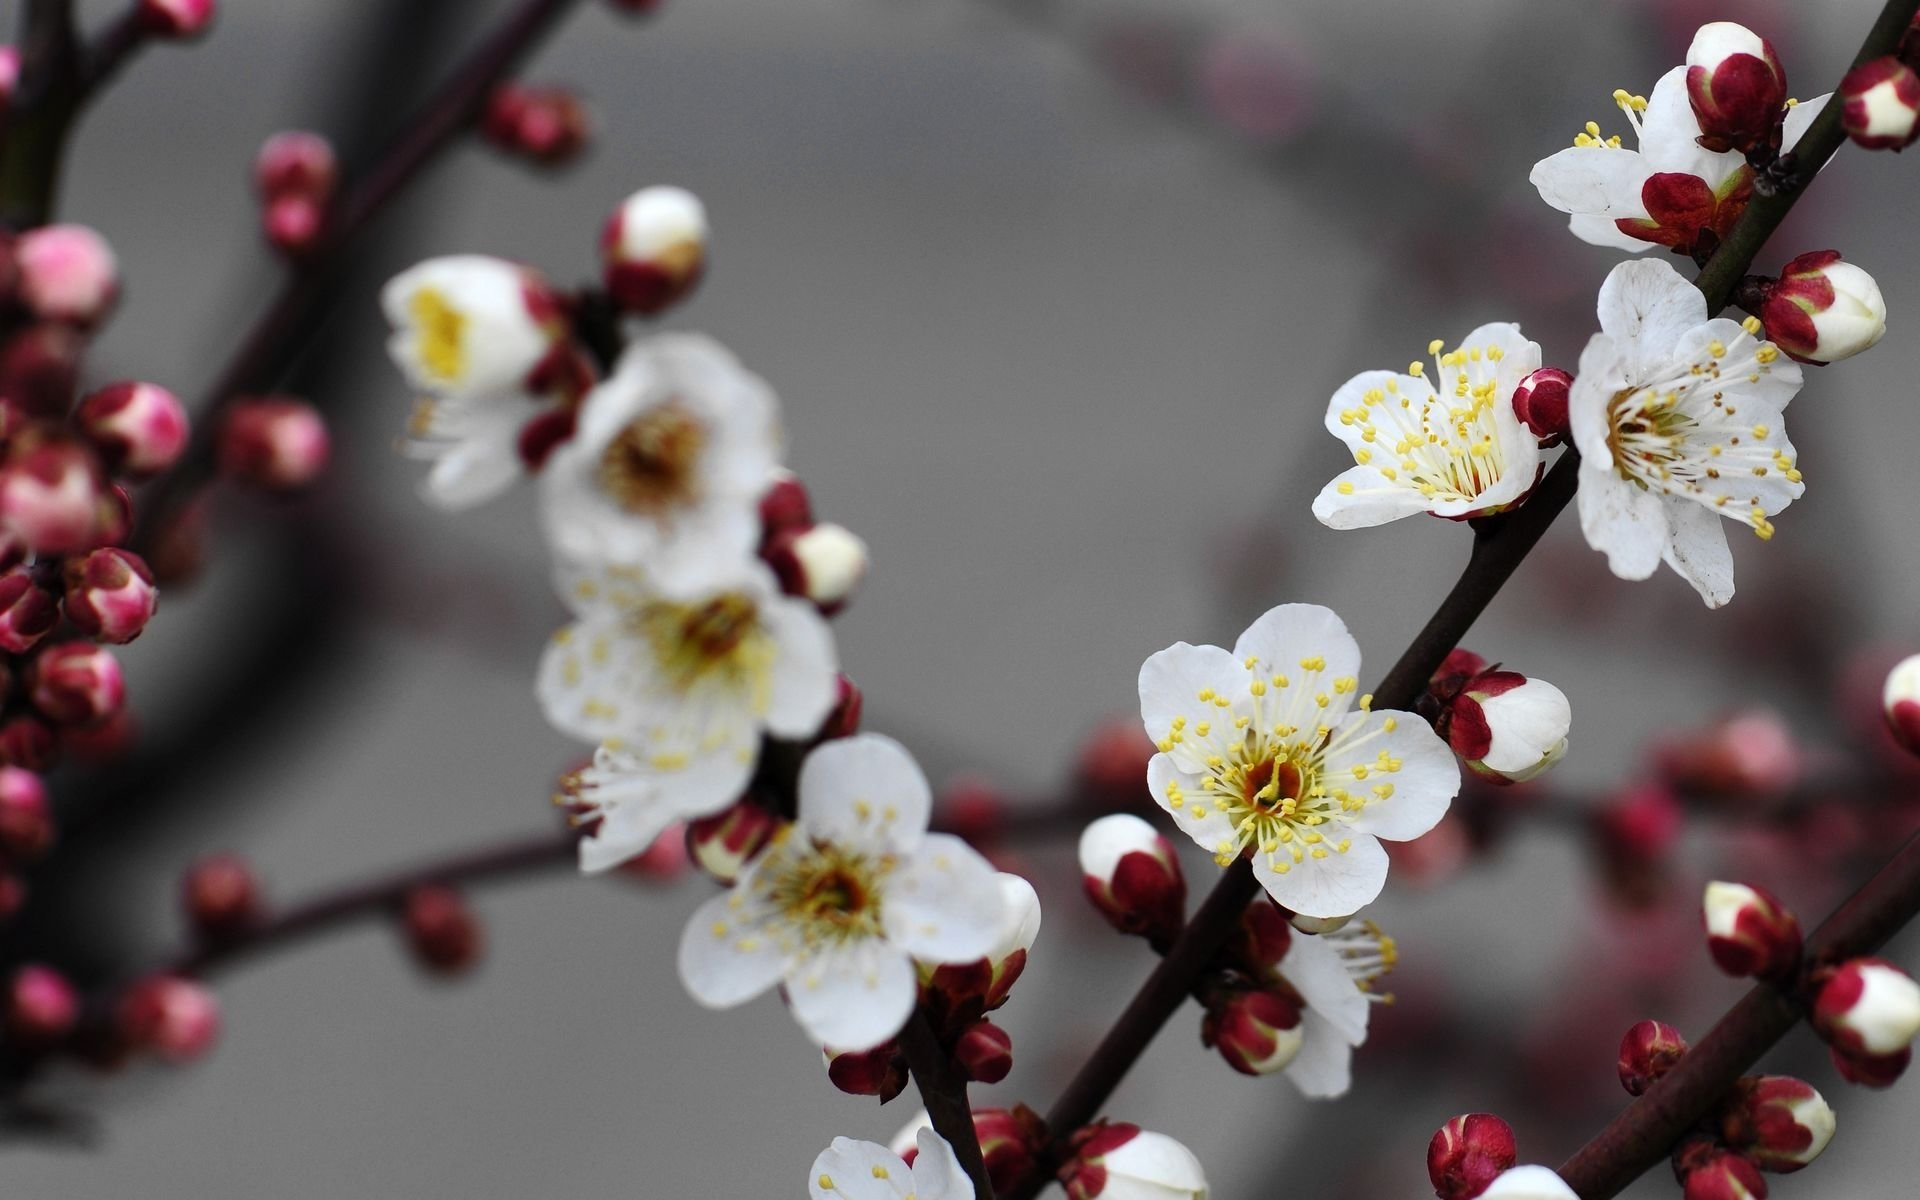 Wallpaper Beautiful White Plum Flowers Bloom 1920x1200 Hd Picture Image